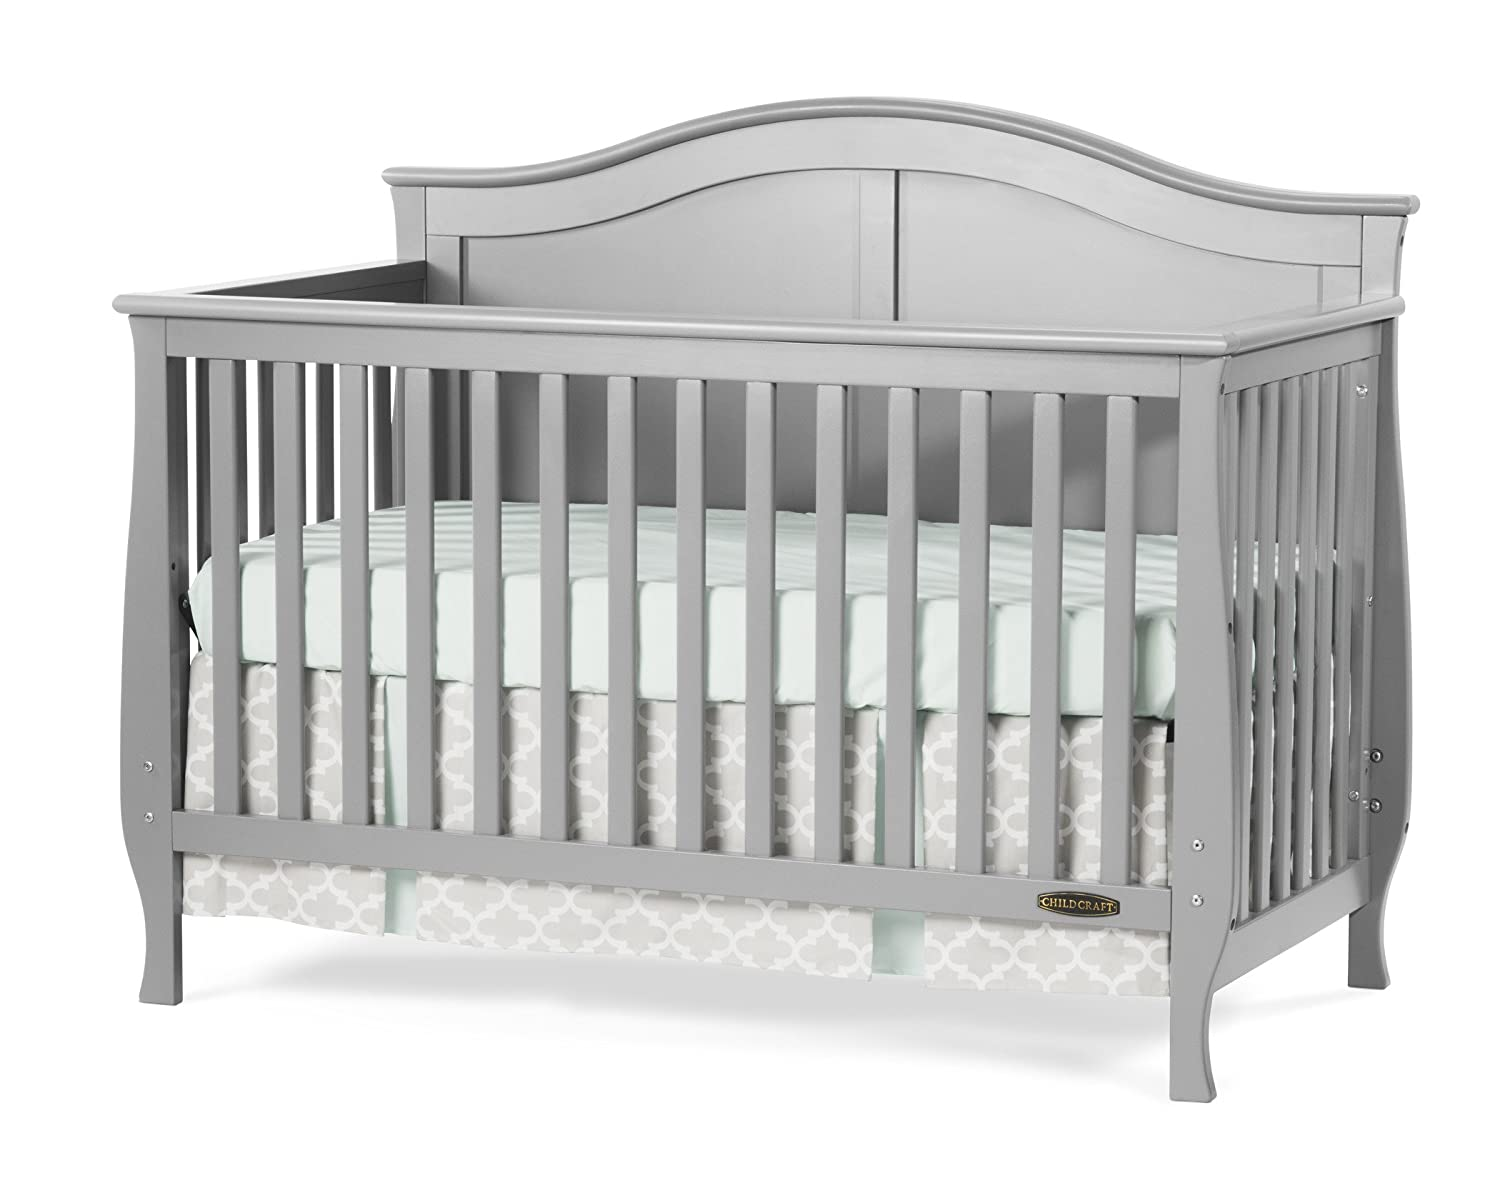 parts walmart matte camden cherry com cribs replacement crib coventry lifetime london child convertible white in traditional dresser amazing craft euro partsr